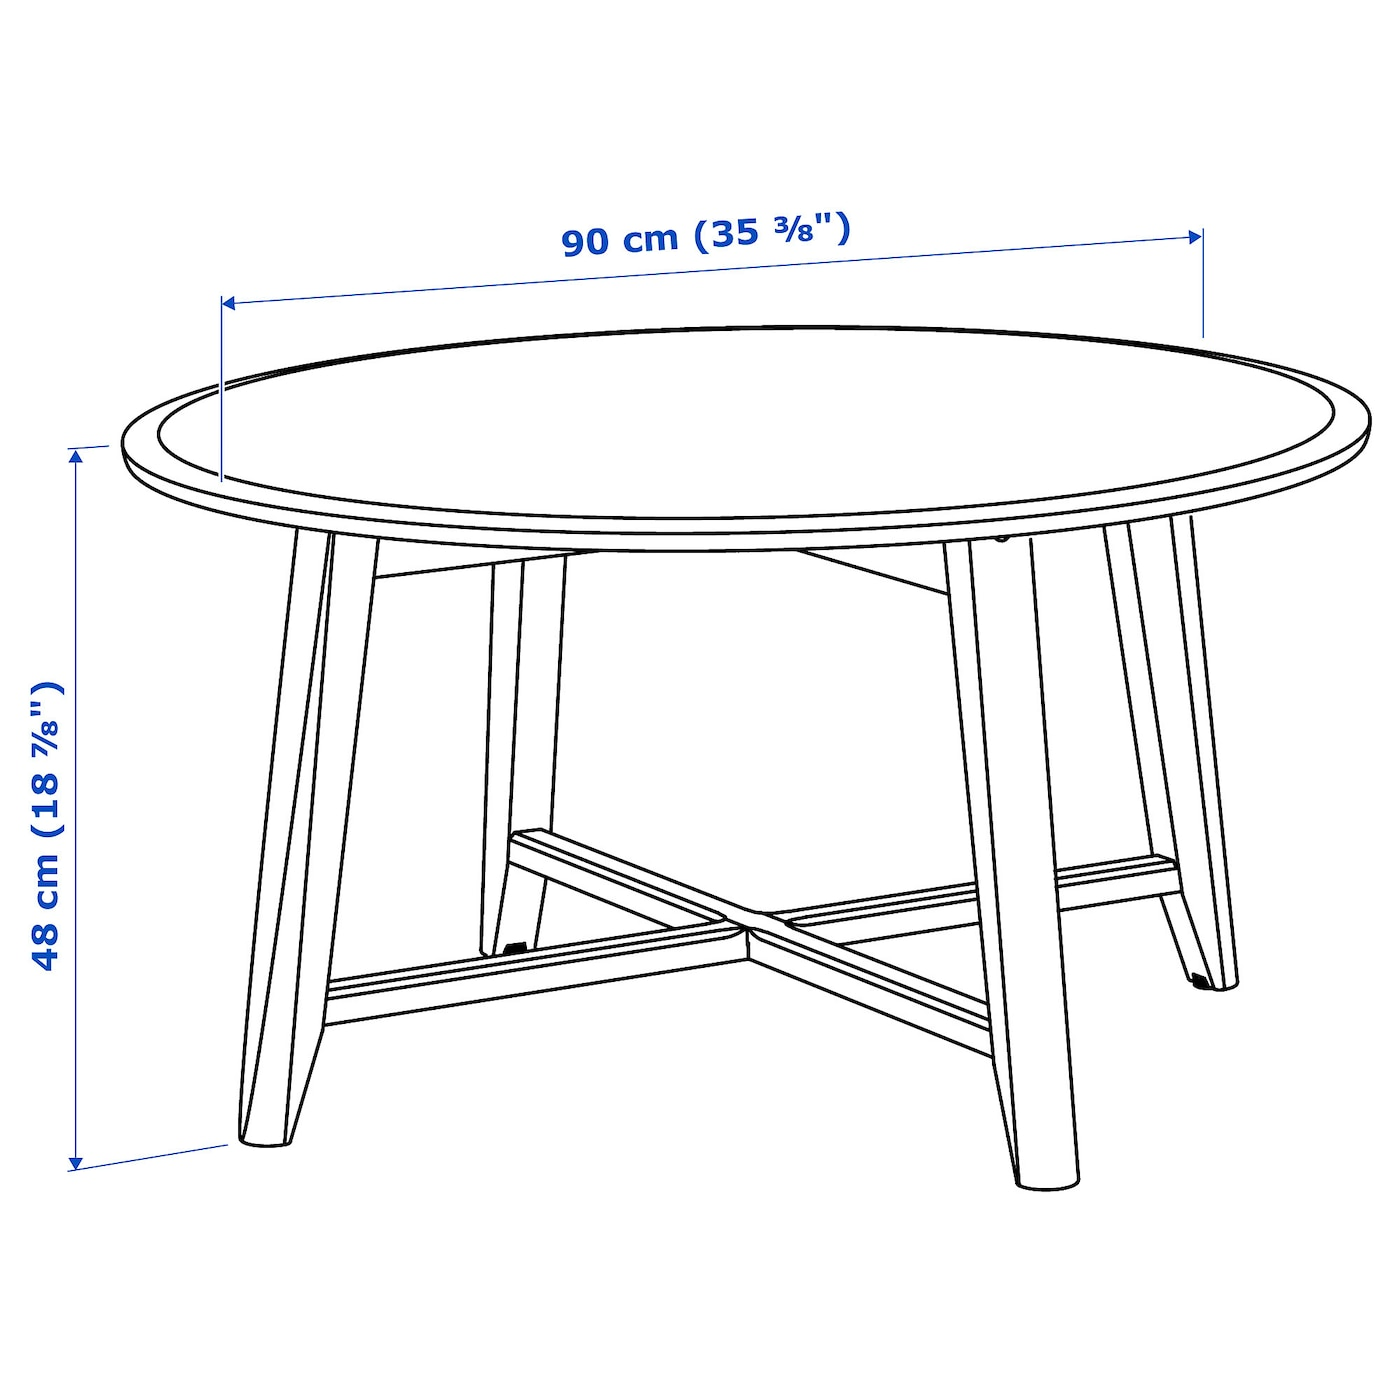 IKEA KRAGSTA coffee table The table legs are made of solid wood, a hardwearing natural material.